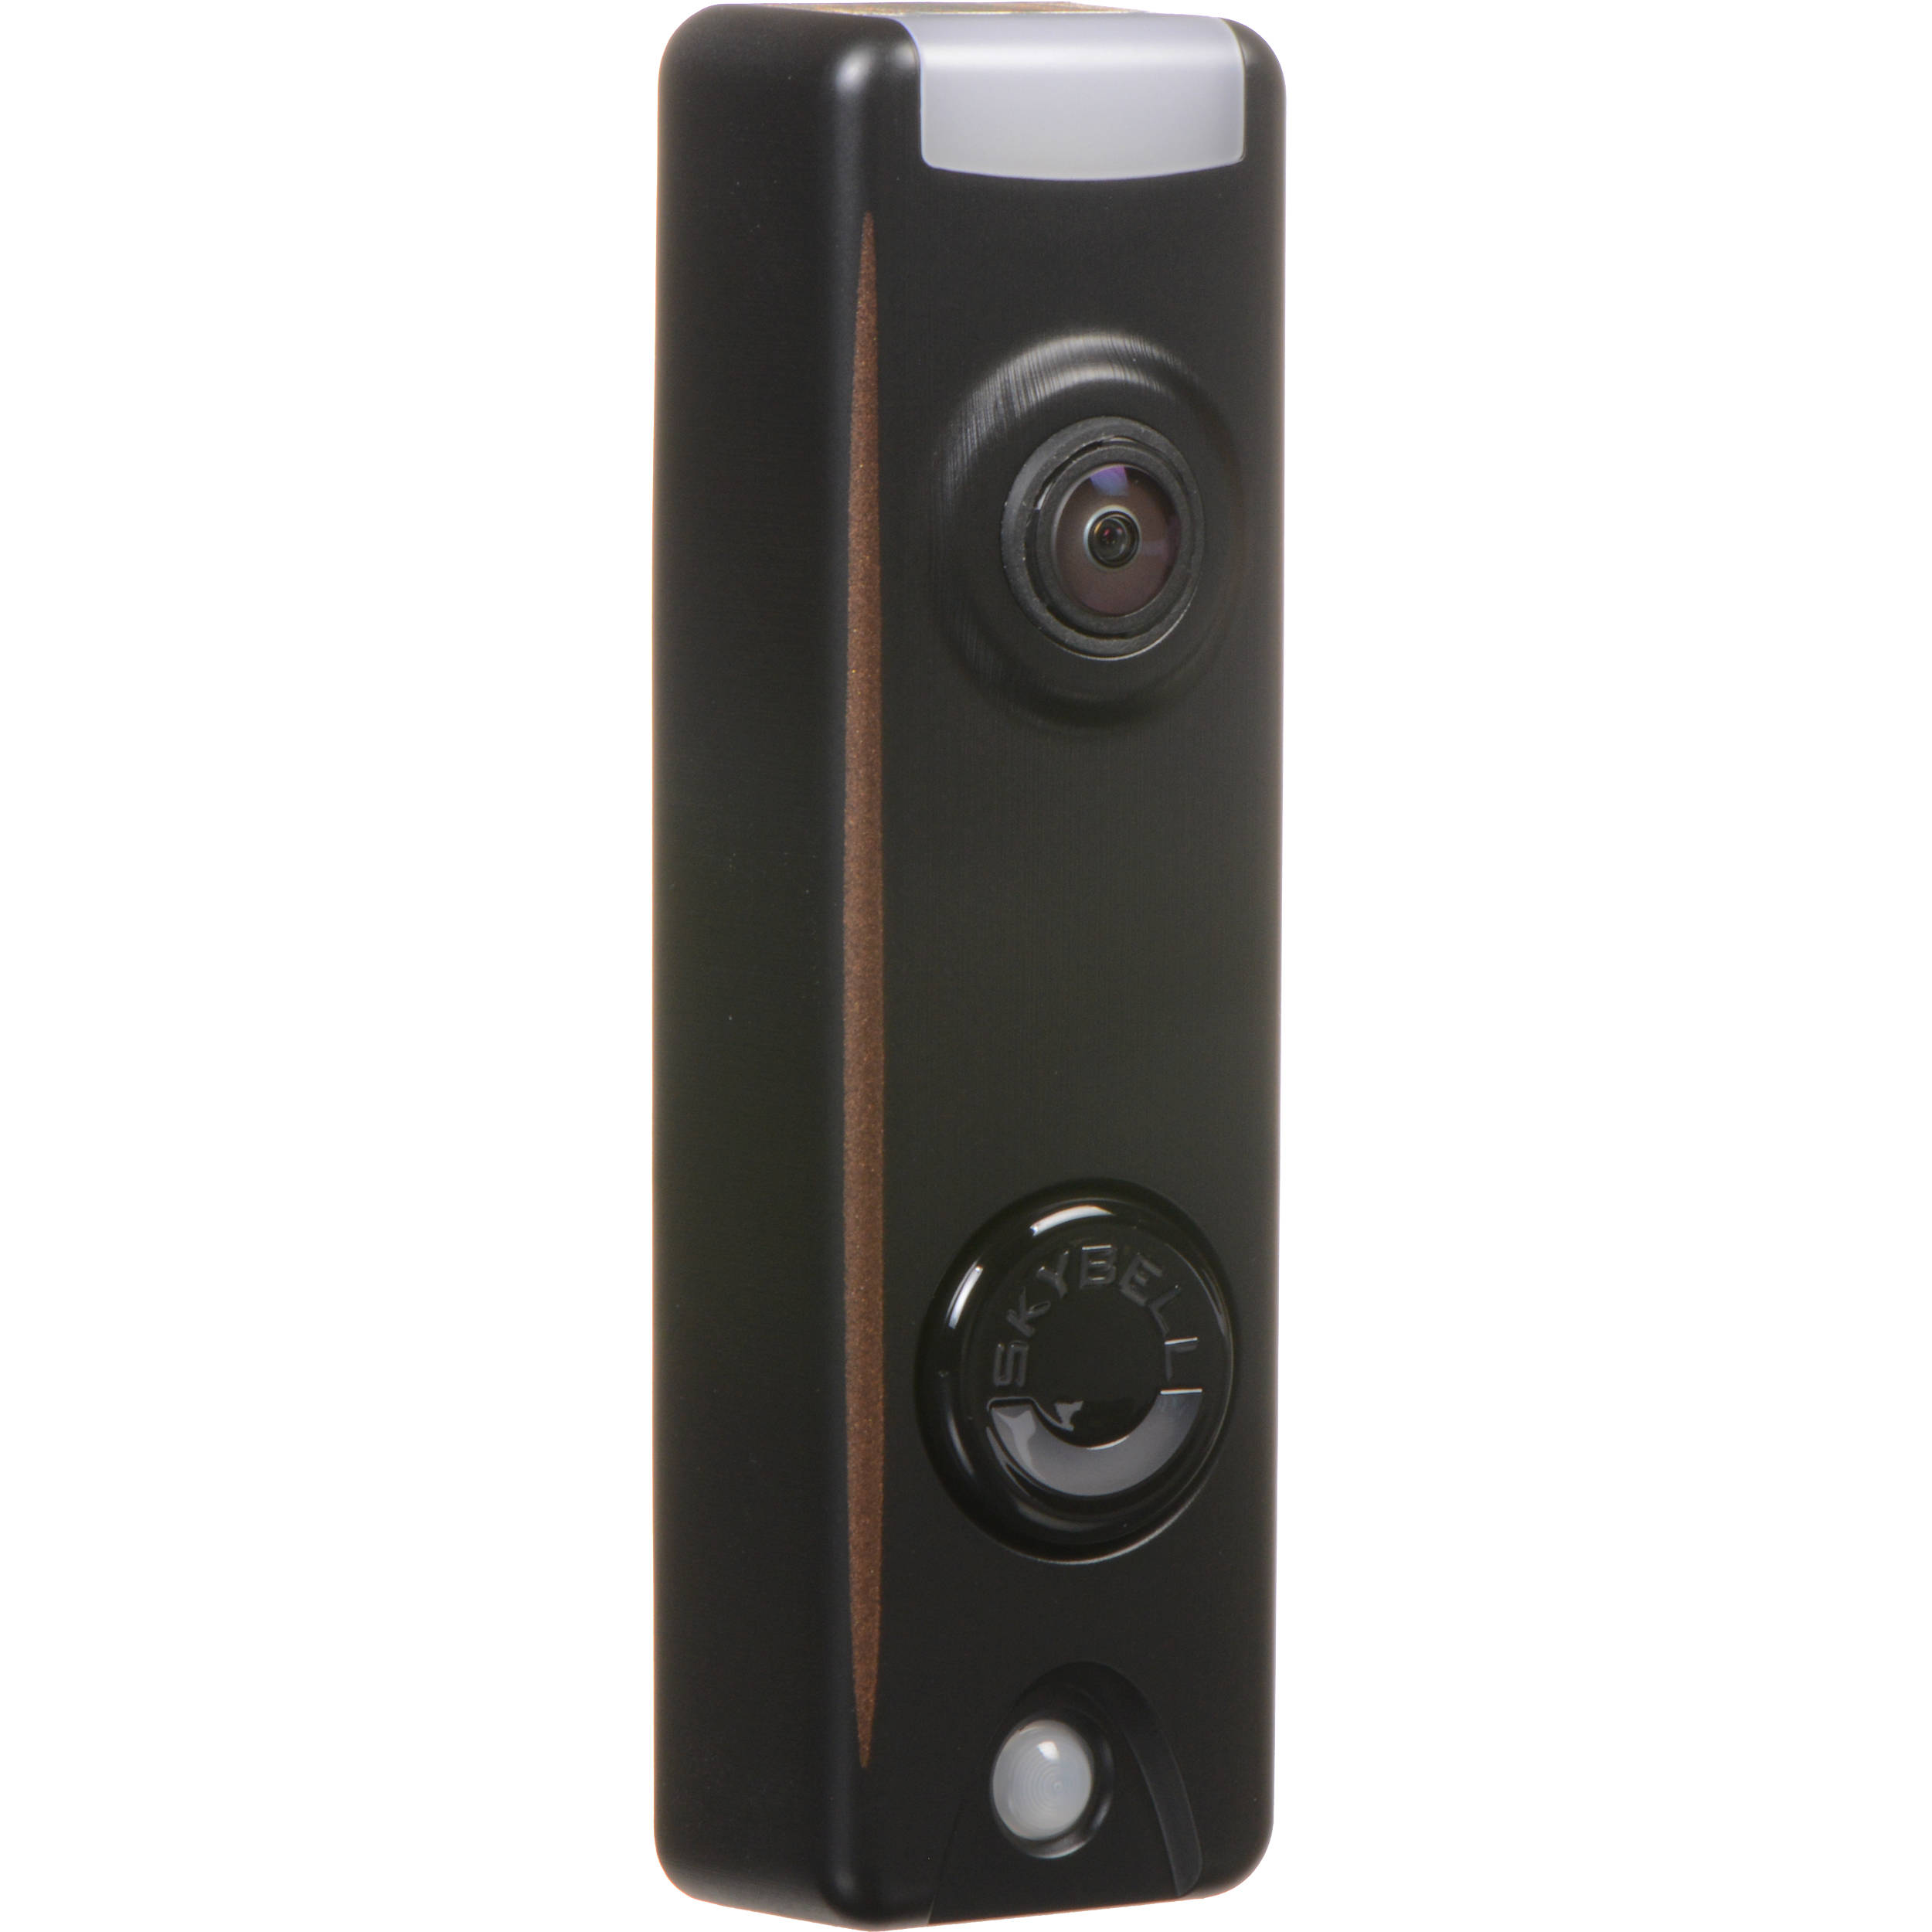 New Ring Pro Video Door Bell